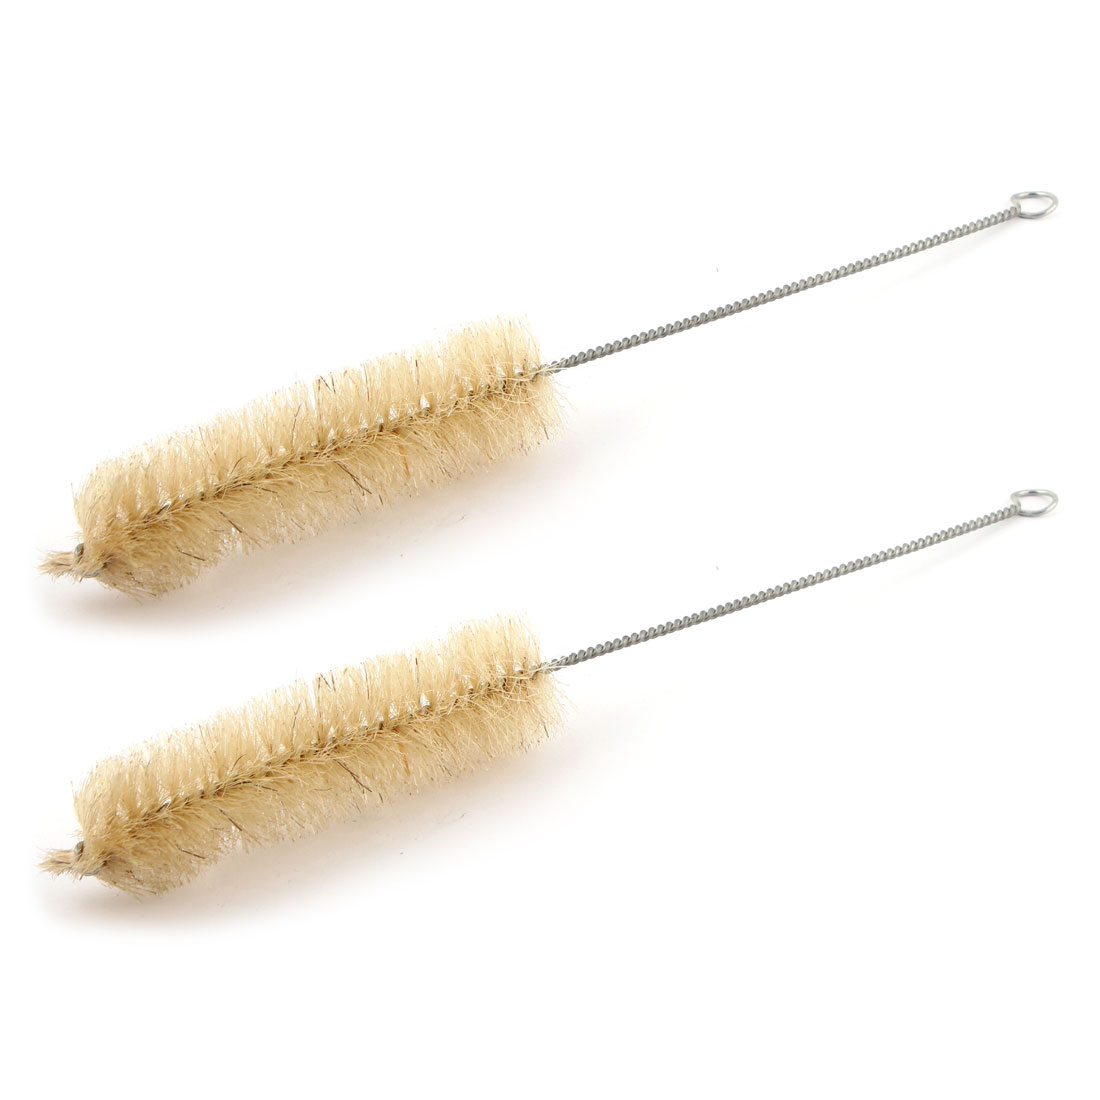 2pcs Twisted Metal Grip Test Tube Measuring Cylinder Washing Brush For 100ml Reagent Bottle